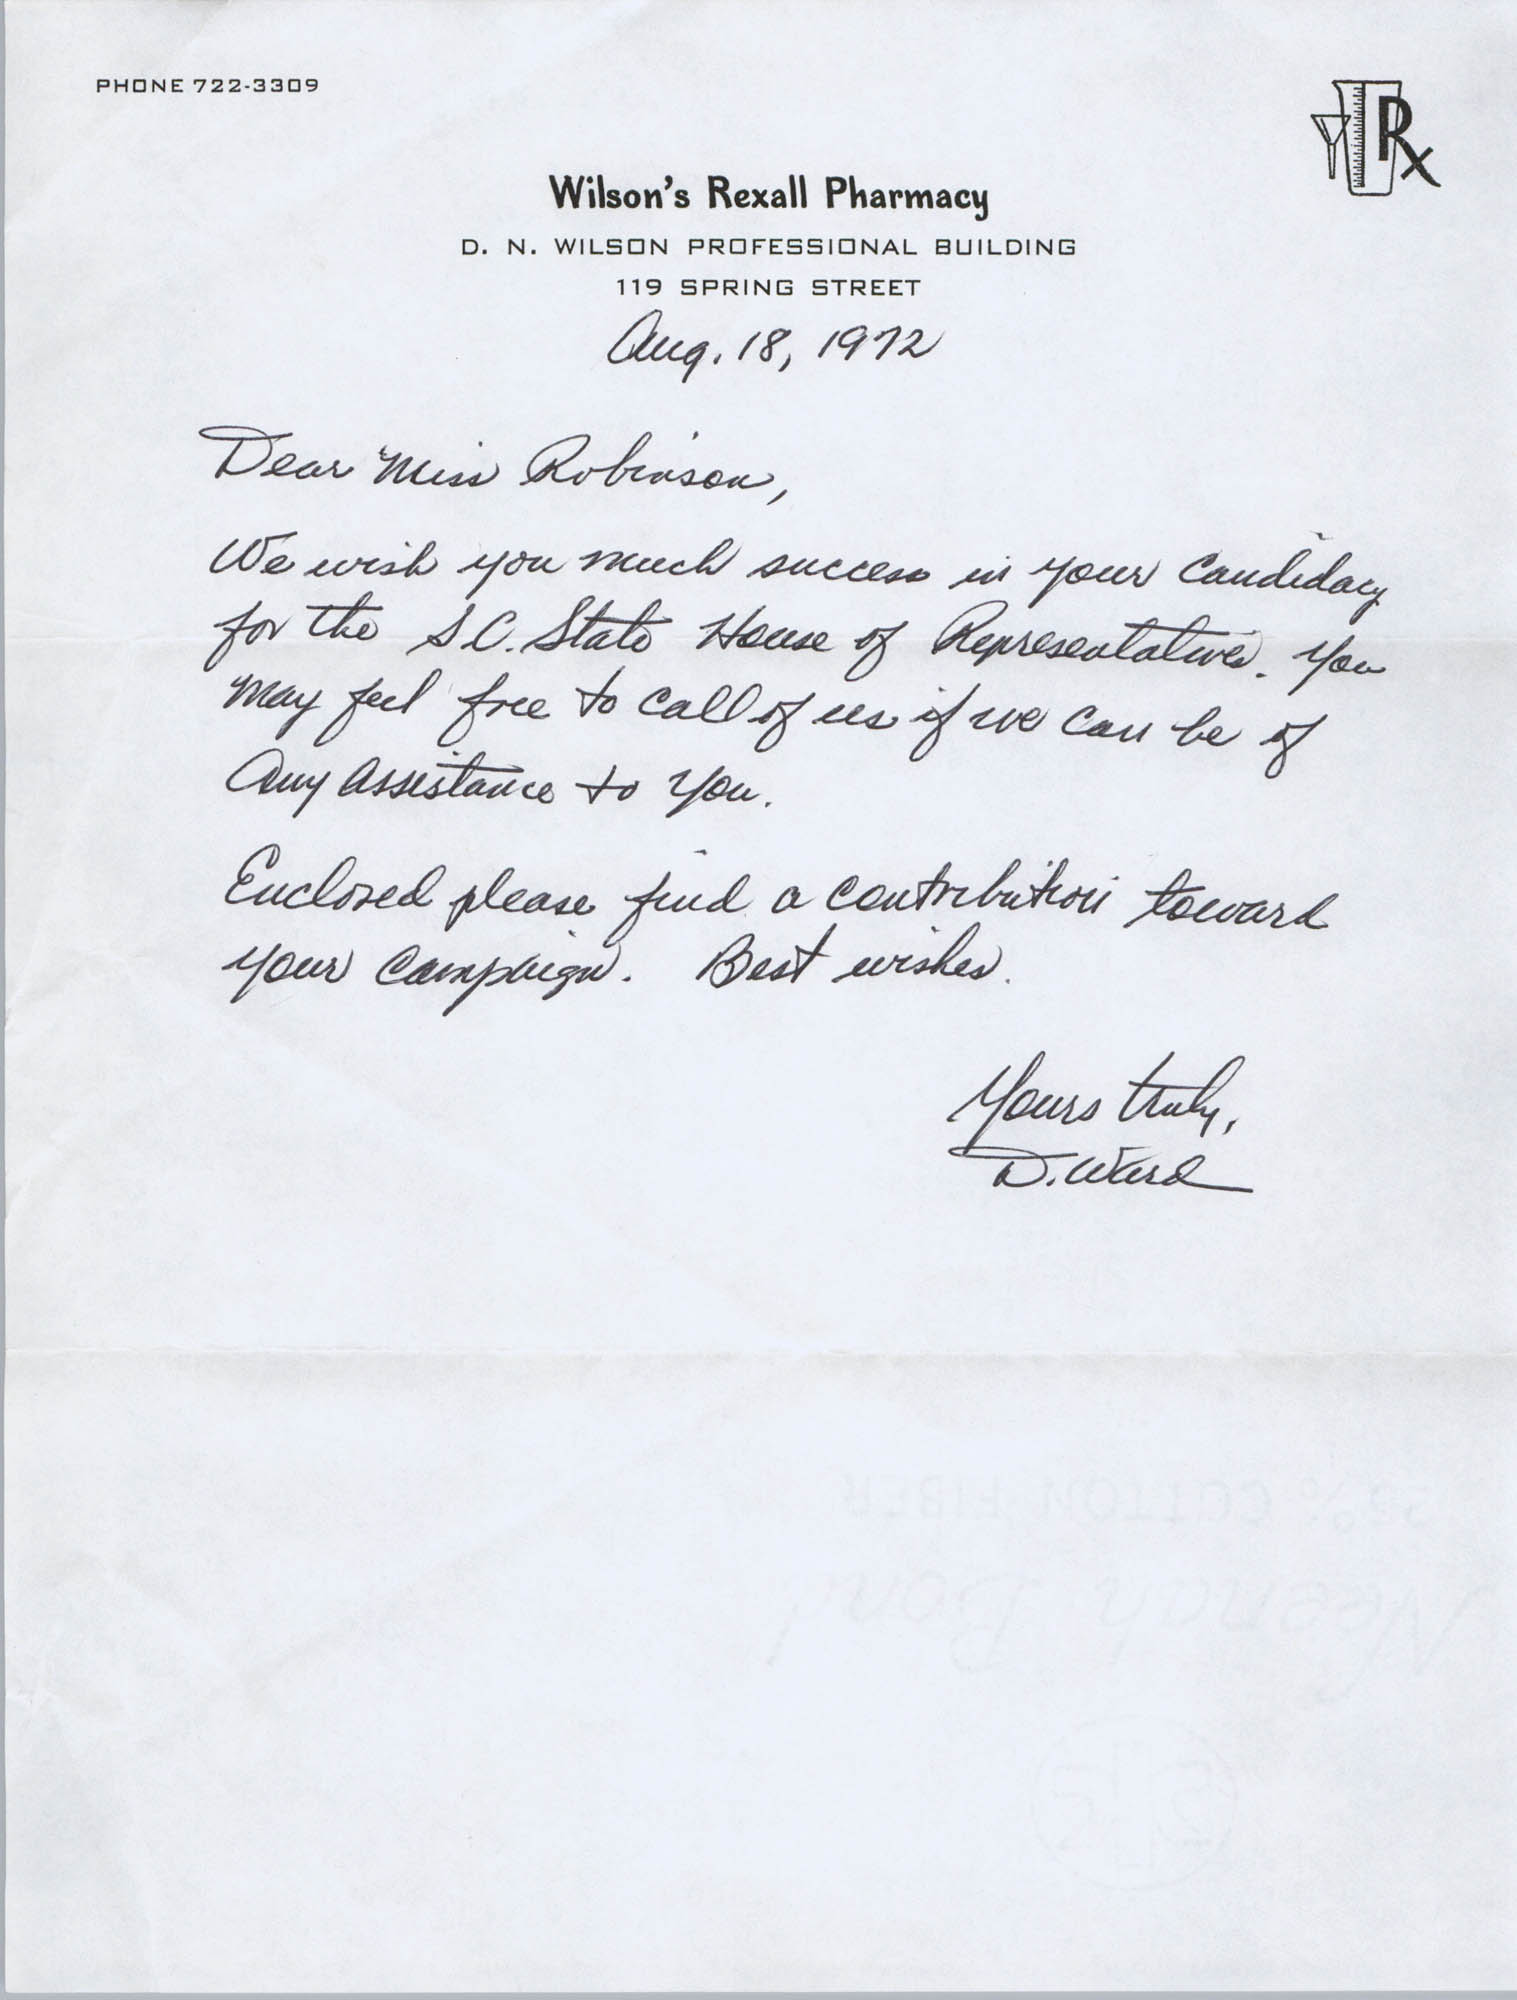 Letter from D. Ward to Bernice Robinson, August 18, 1972